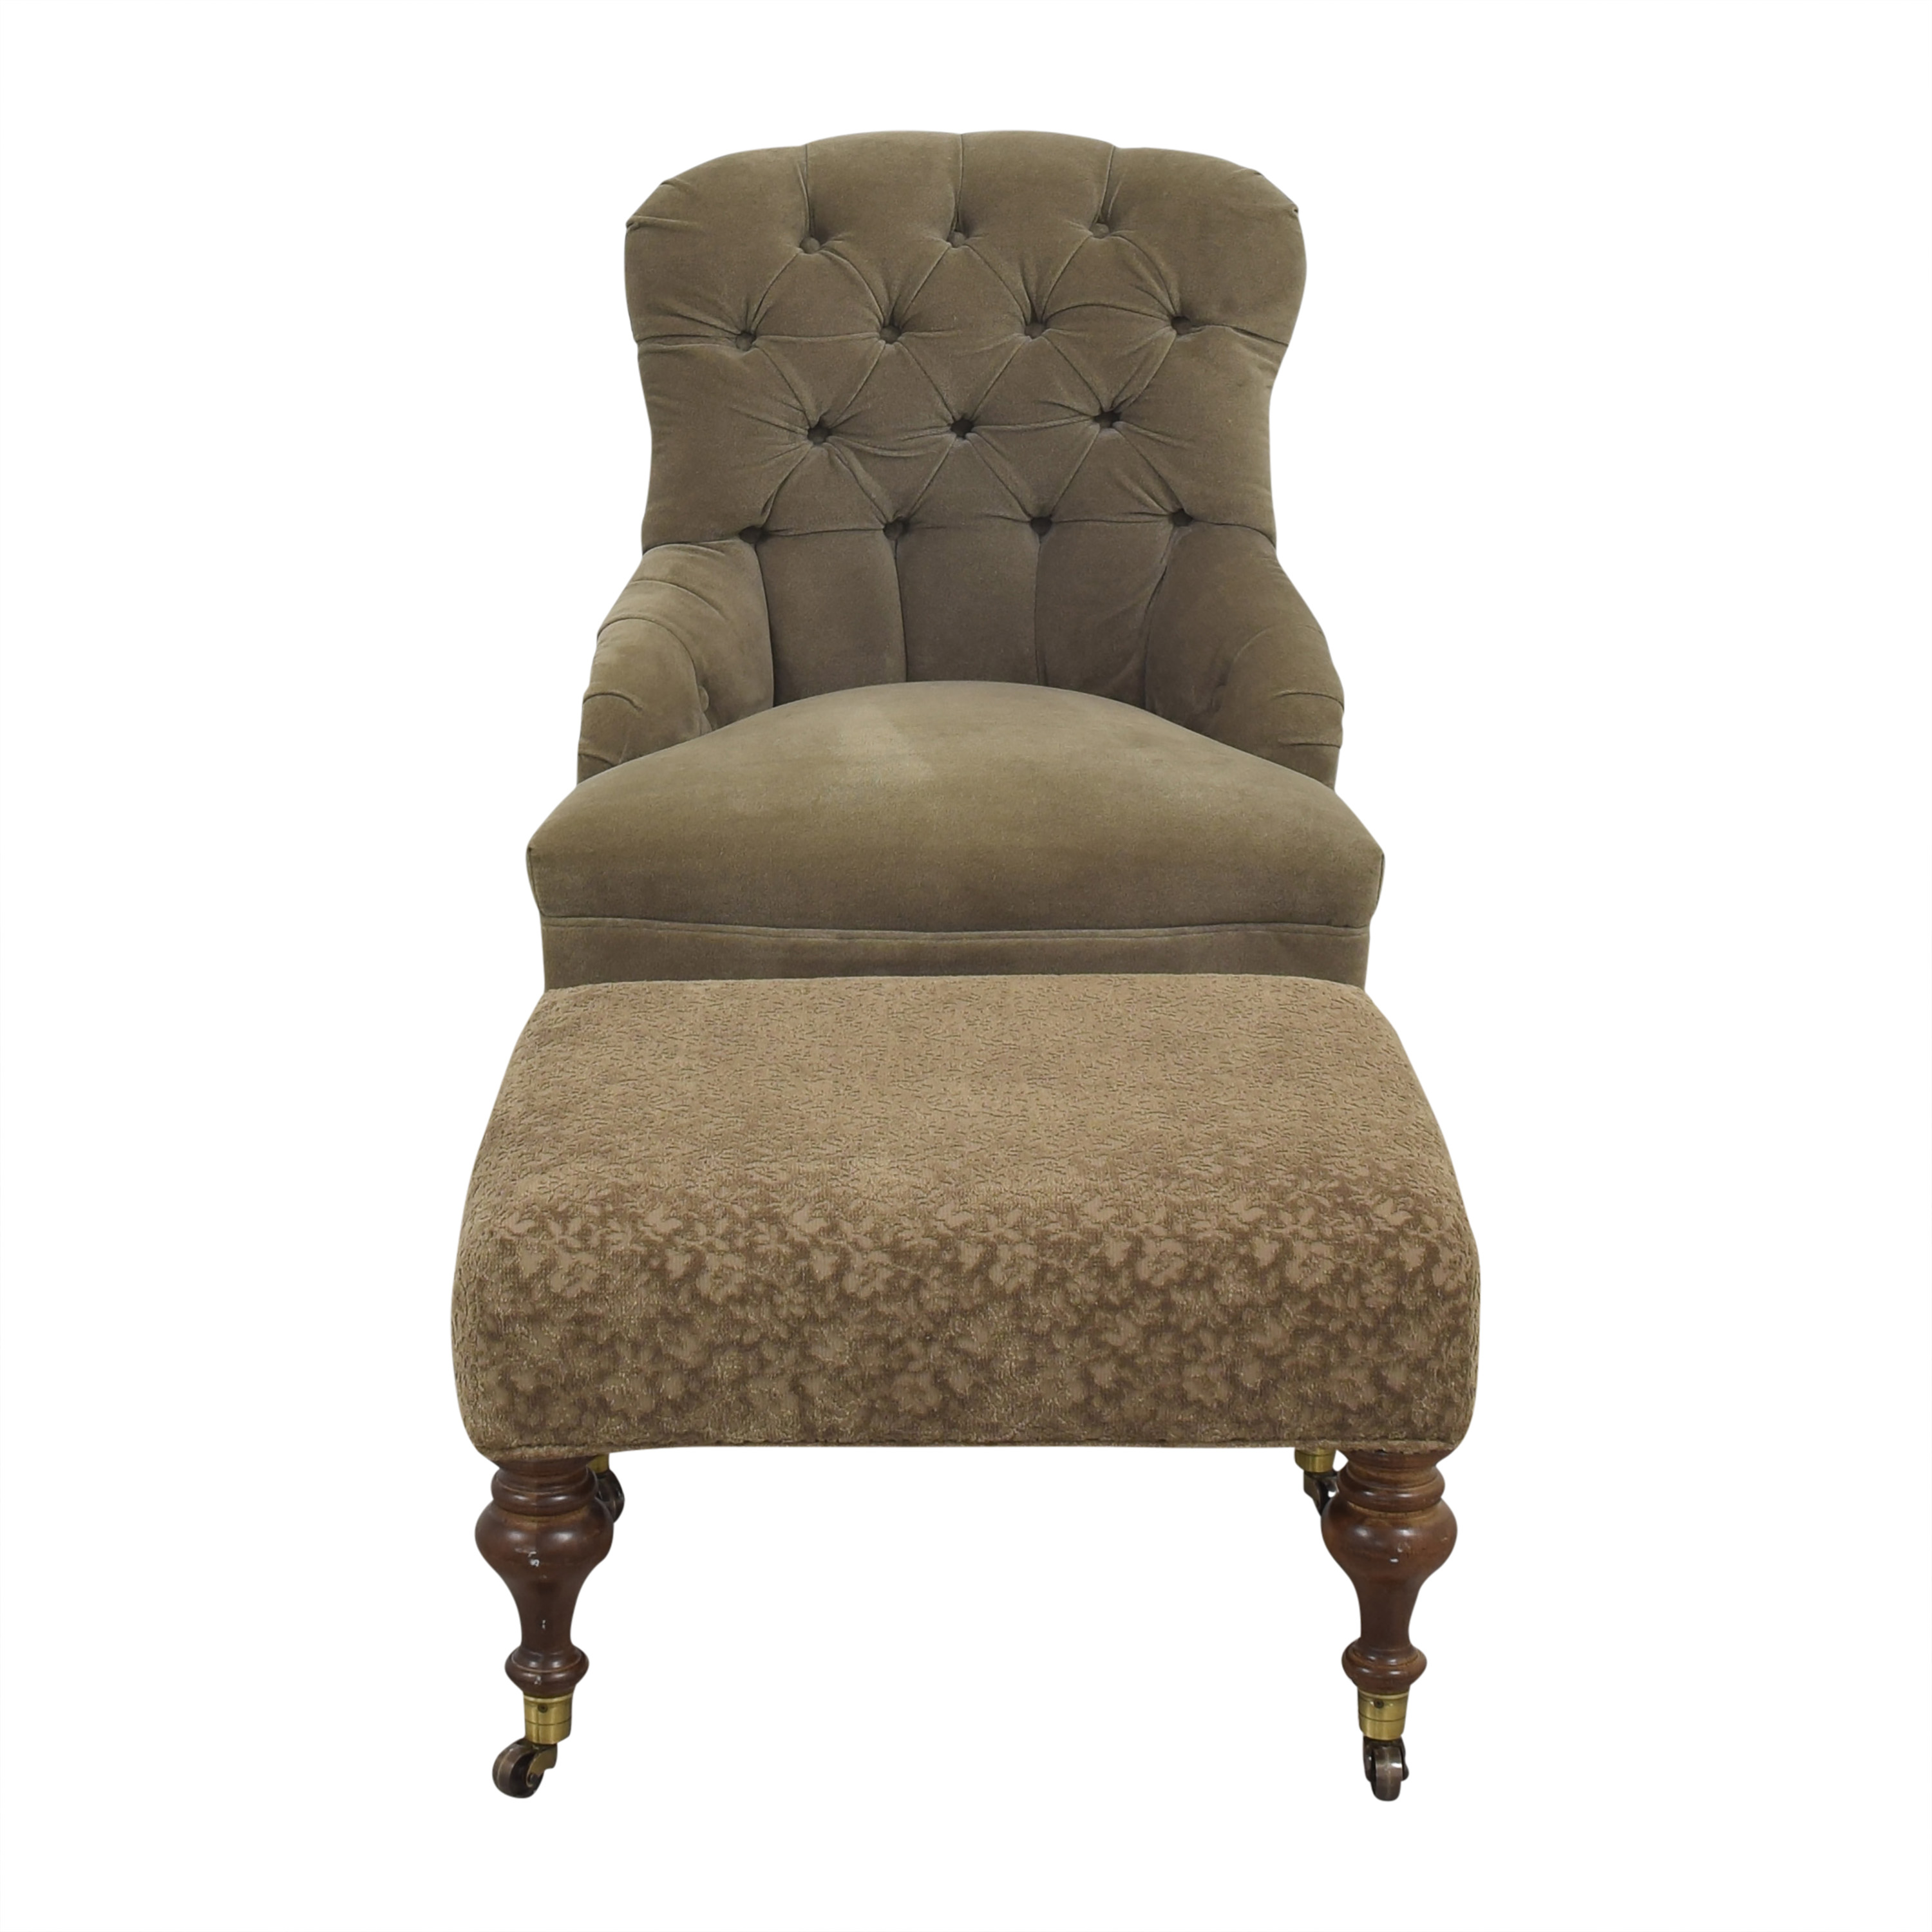 Lee Industries Lee Industries Upholstered Chair and Ottoman used